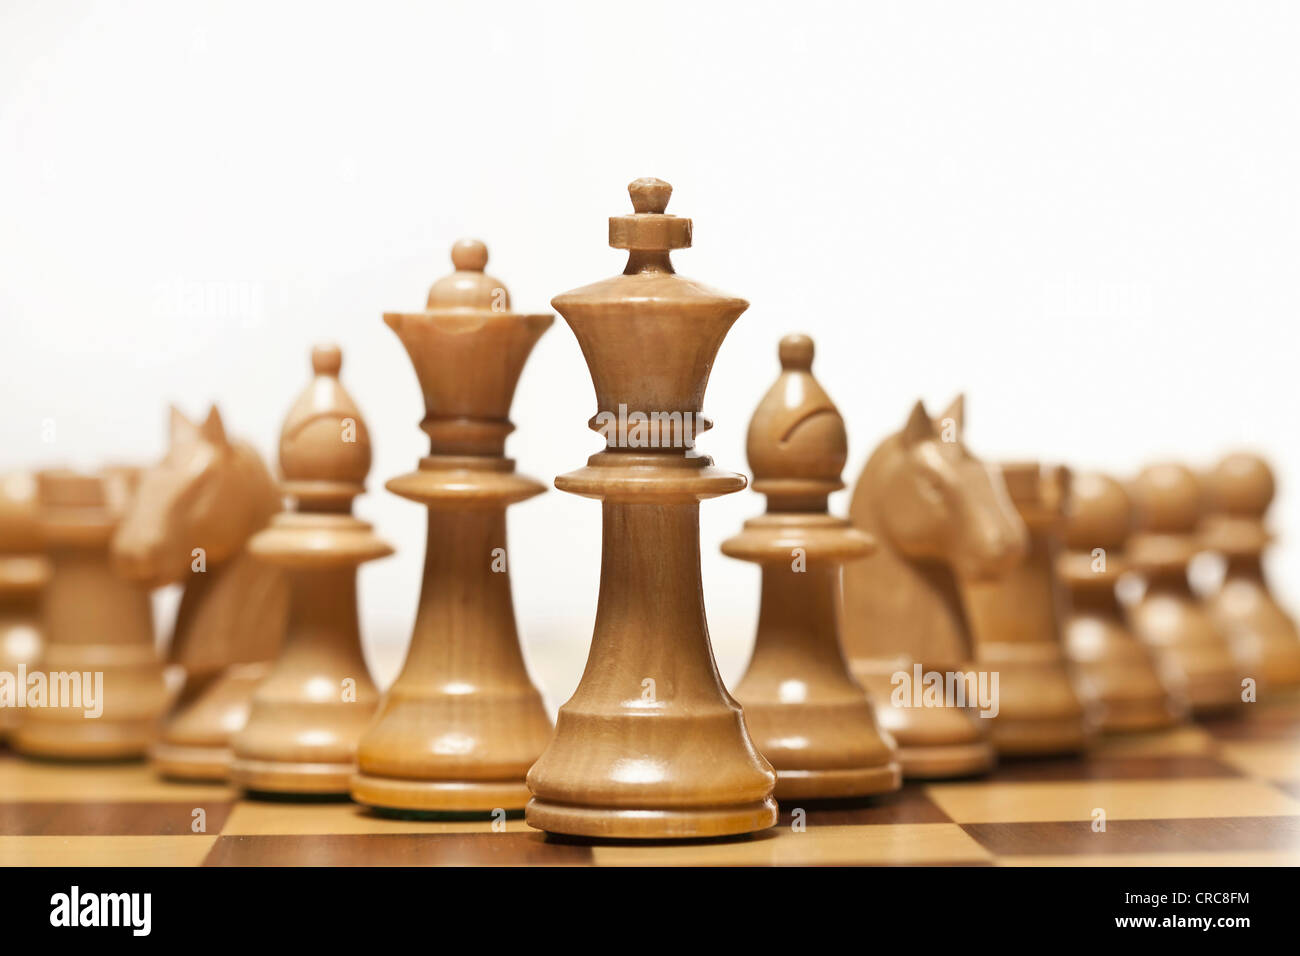 White chess set on board - Stock Image